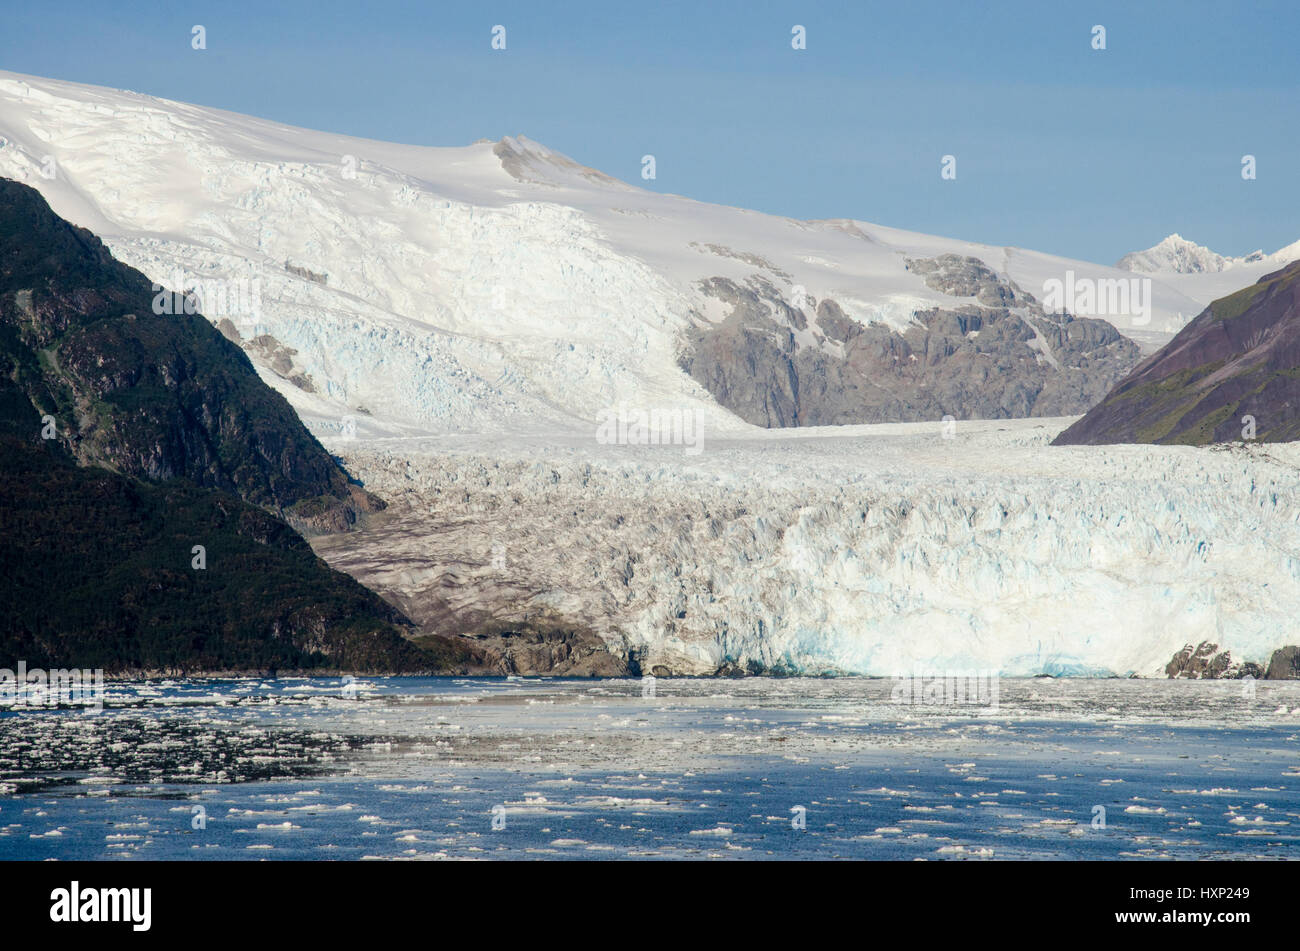 Chile - Amalia Glacier On The Edge Of The Sarmiento Channel - Skua Glacier - Bernardo O'Higgins National Park - Stock Image